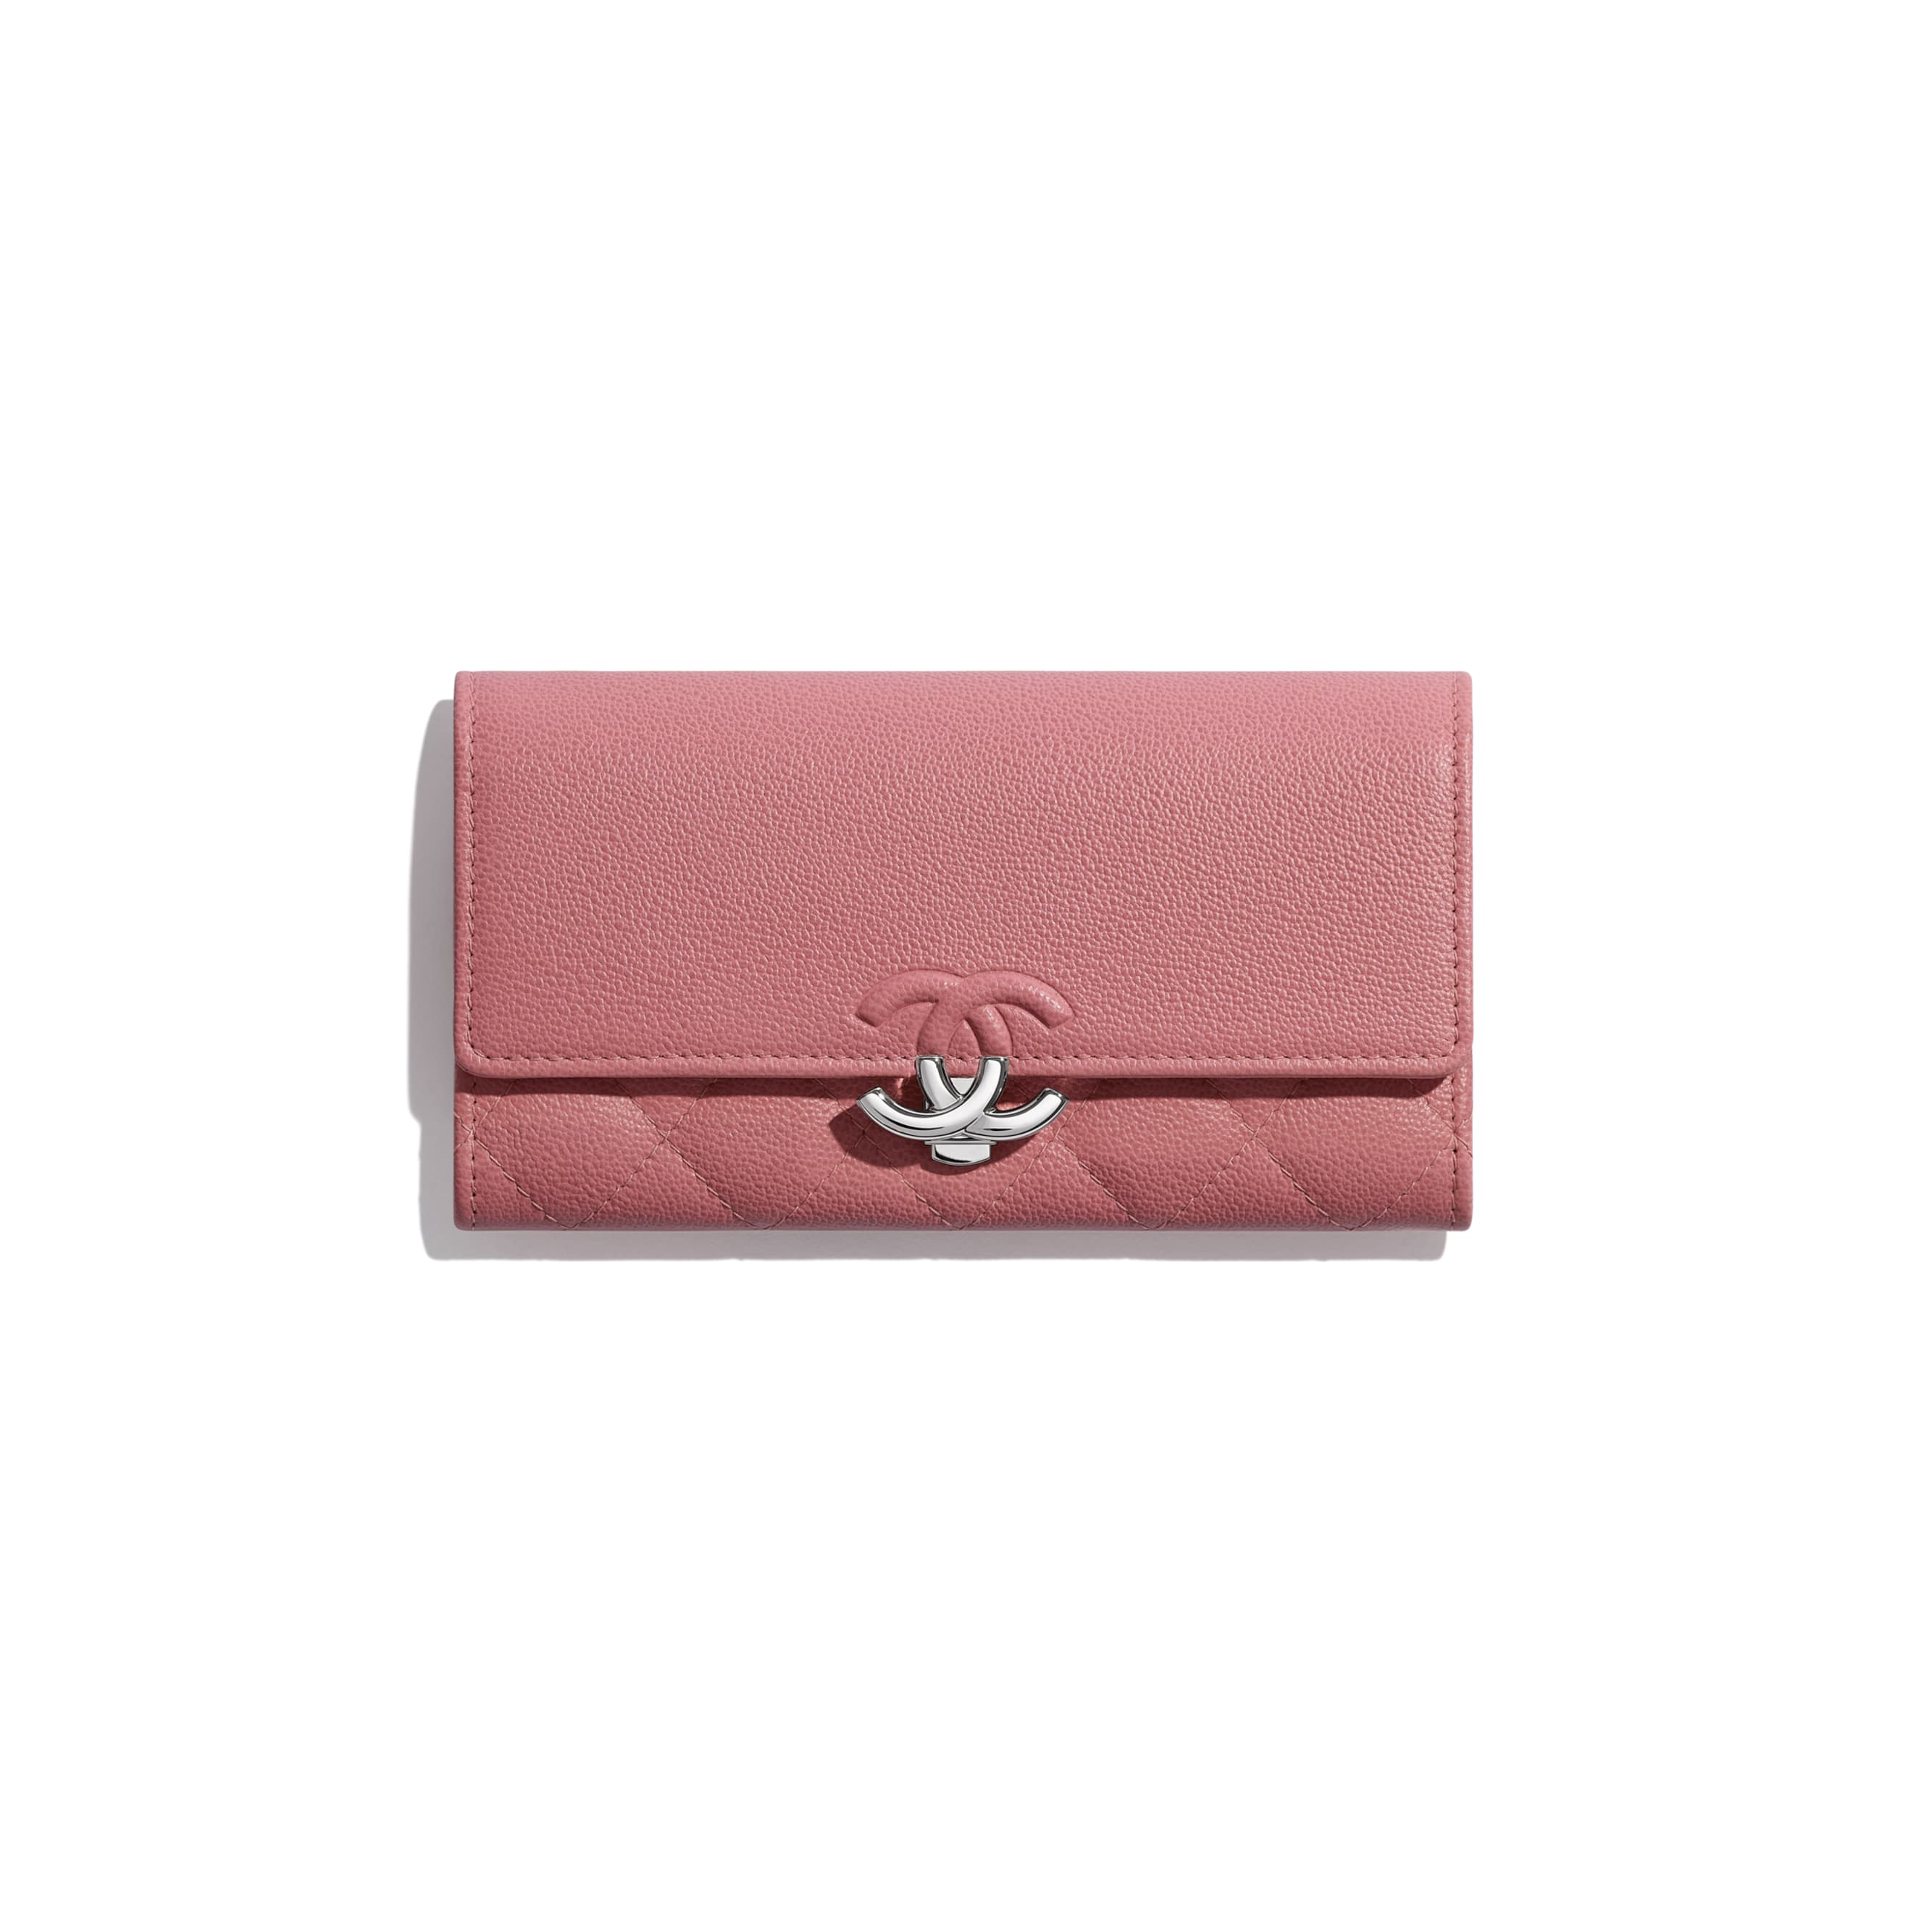 Flap Wallet - Pink - Grained Calfskin & Silver Metal - CHANEL - Default view - see standard sized version